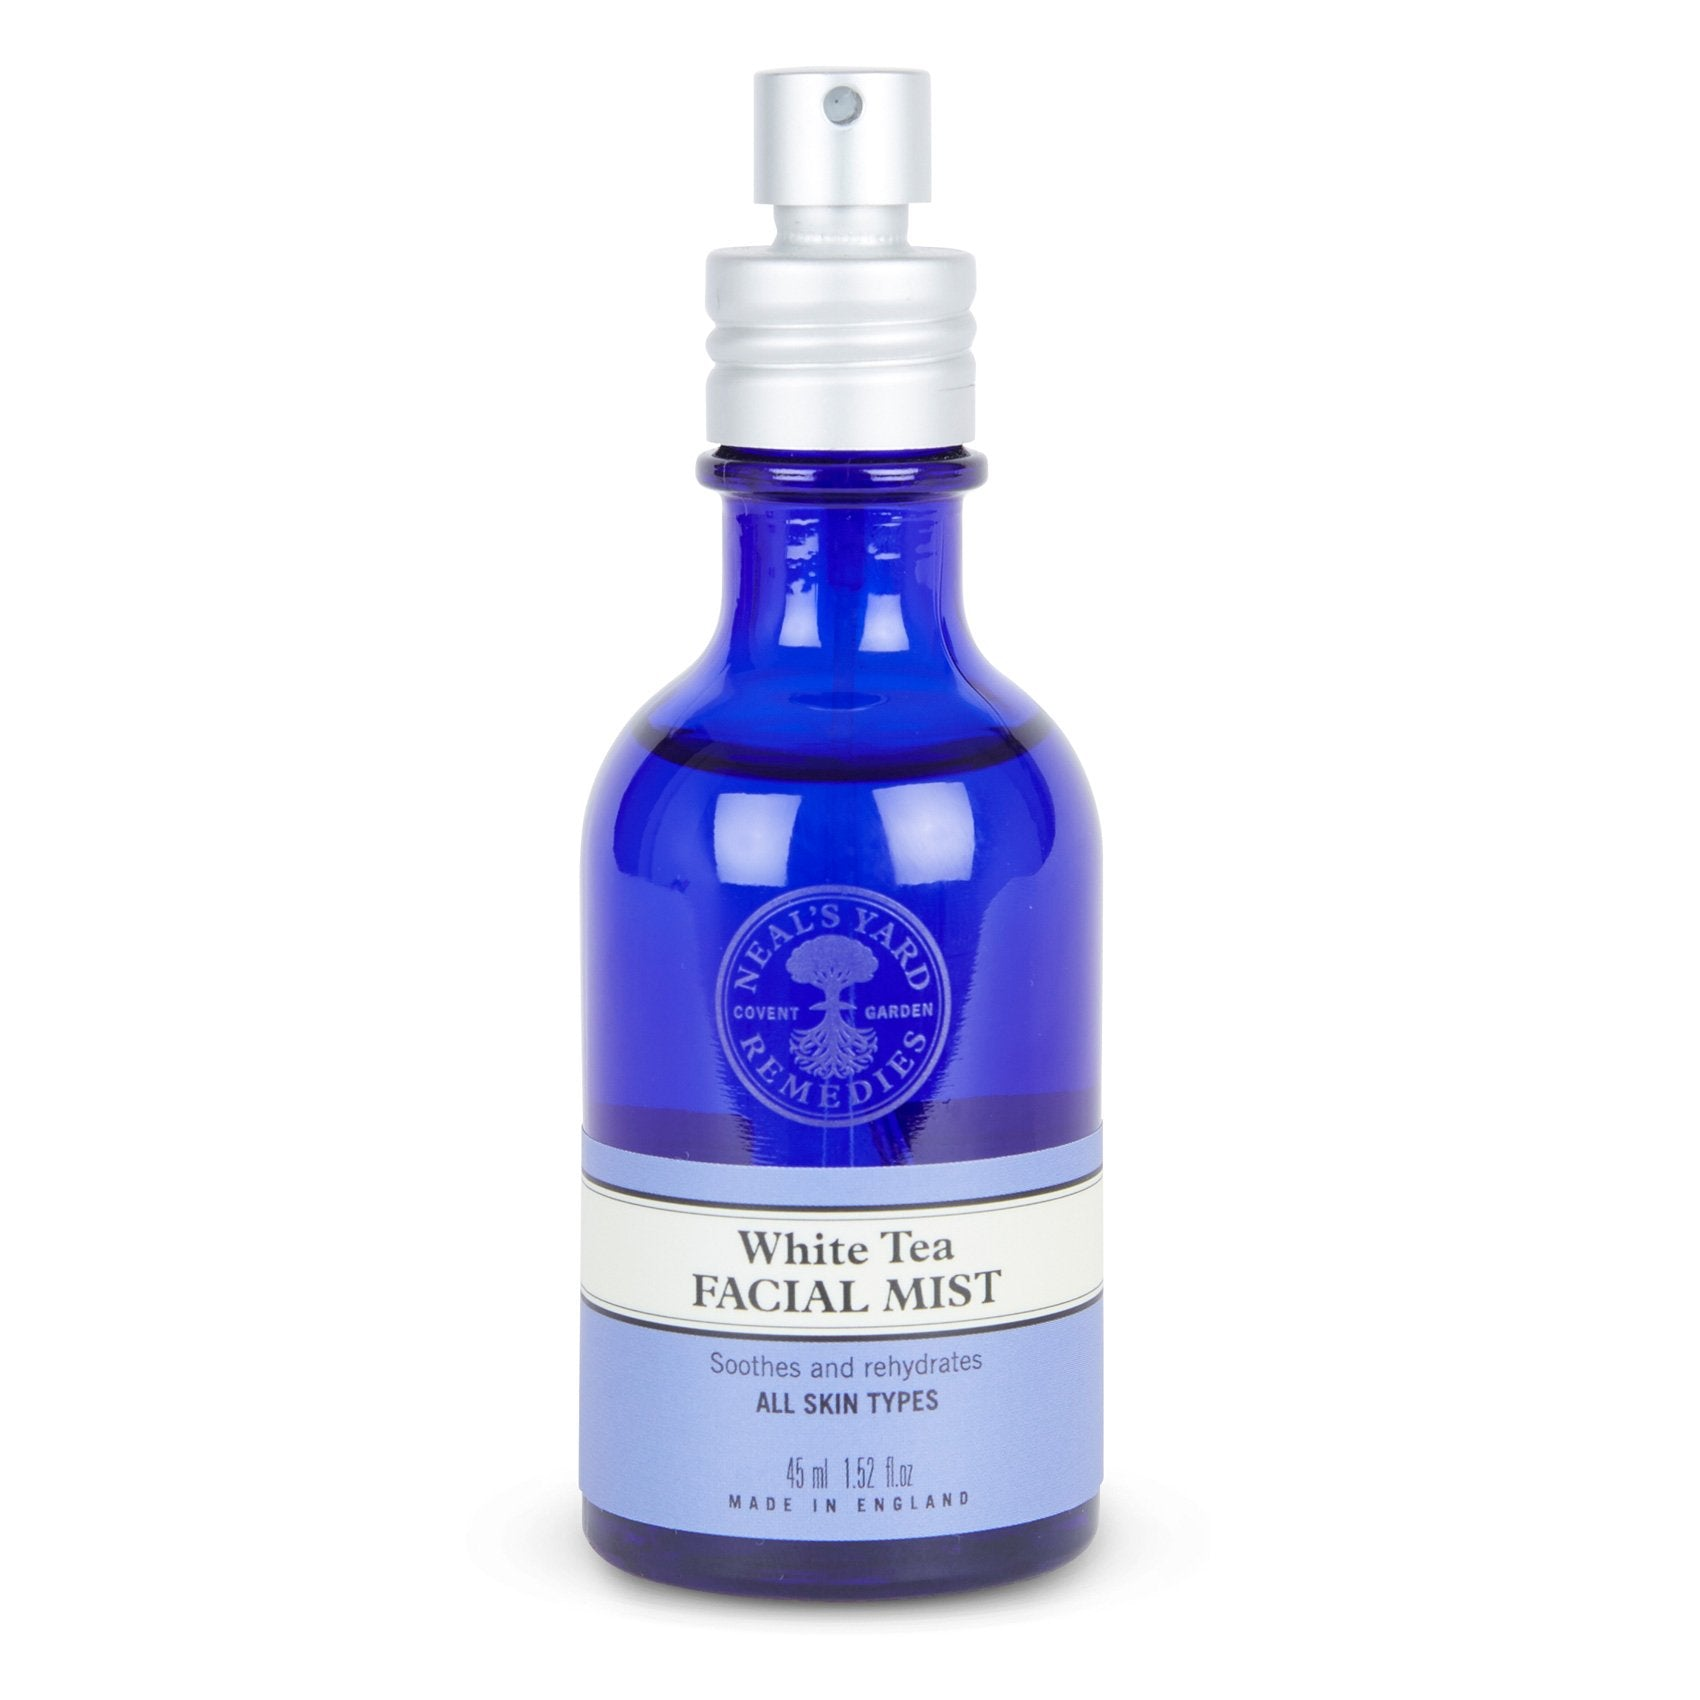 White Tea Facial Mist